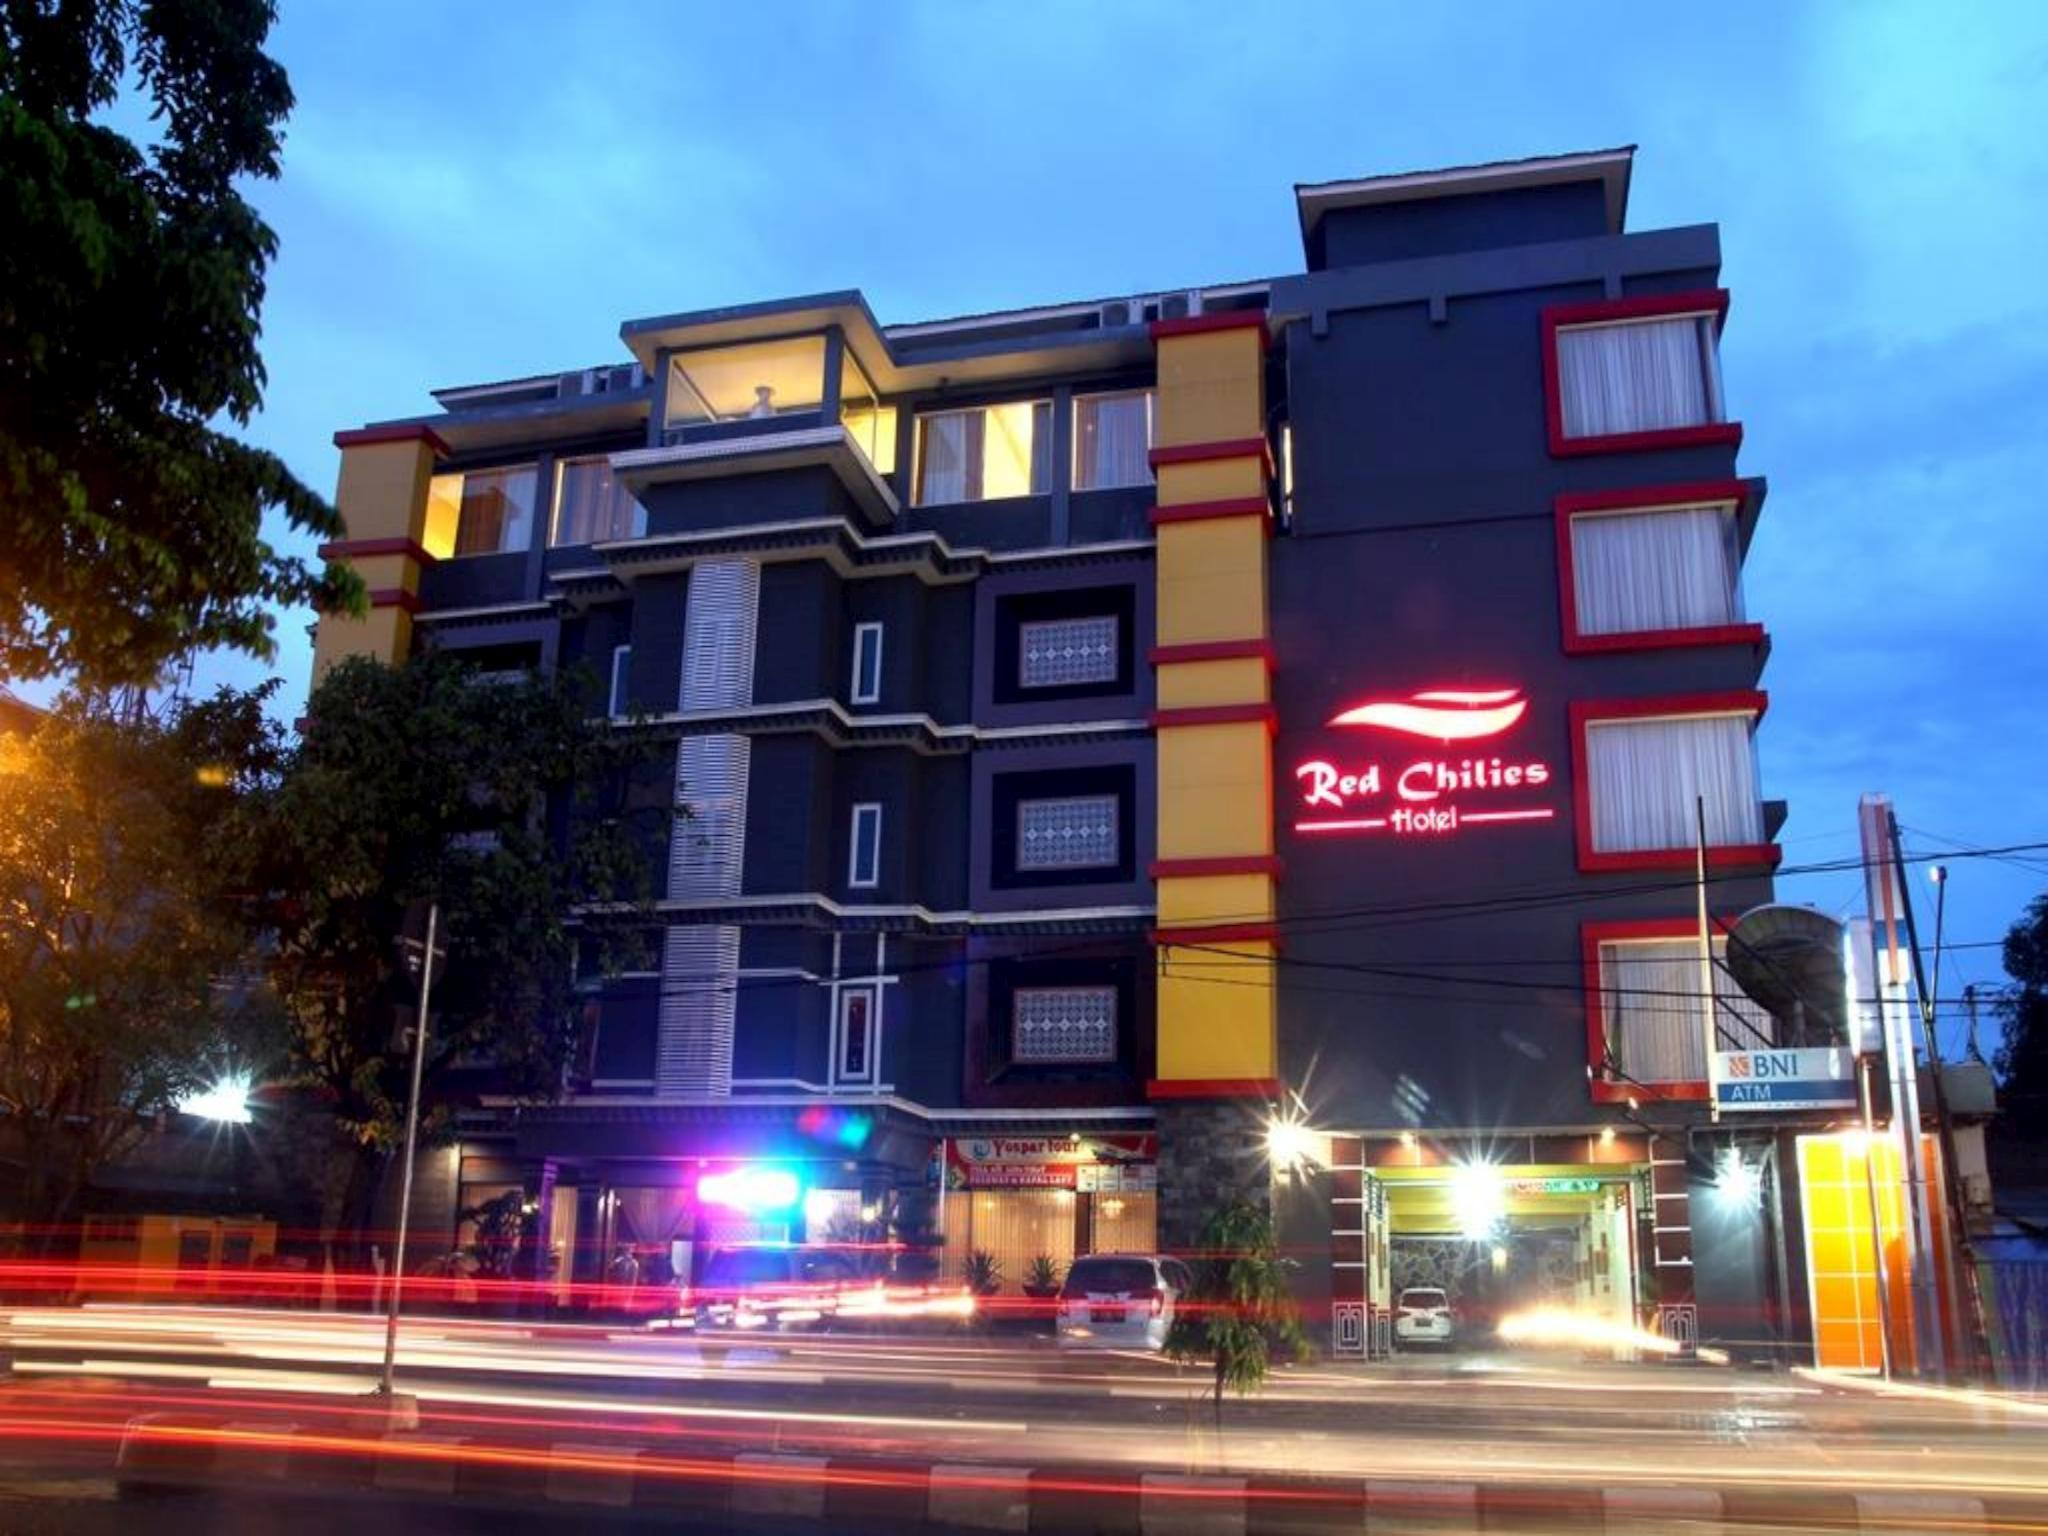 Red Chilies Hotel